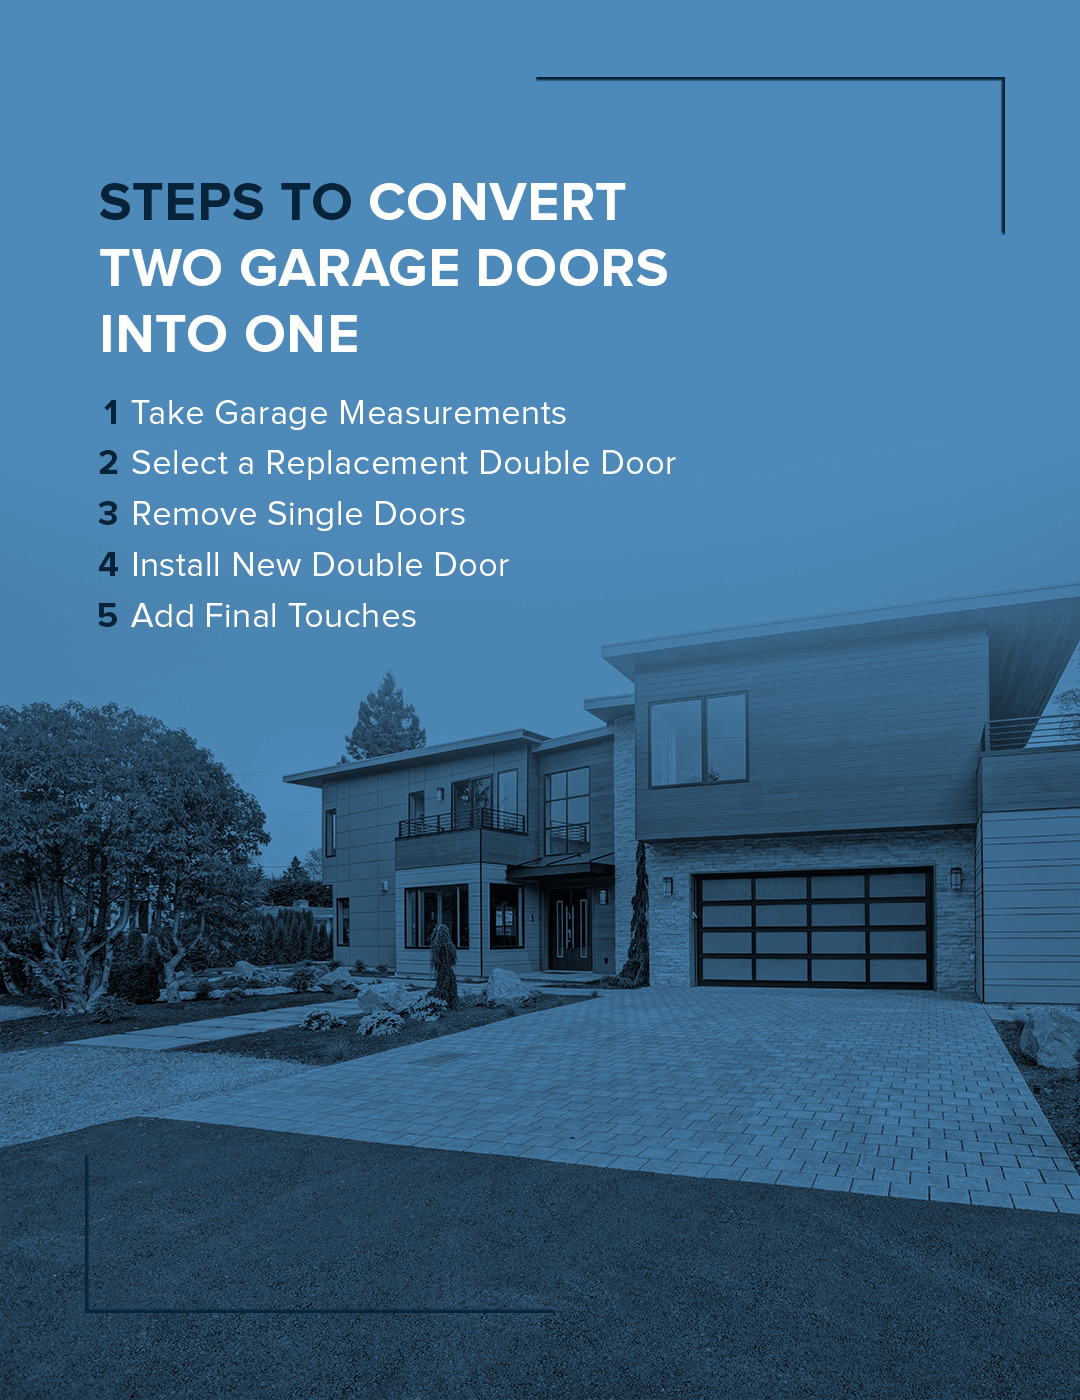 Steps to Convert Two Garage Doors Into One